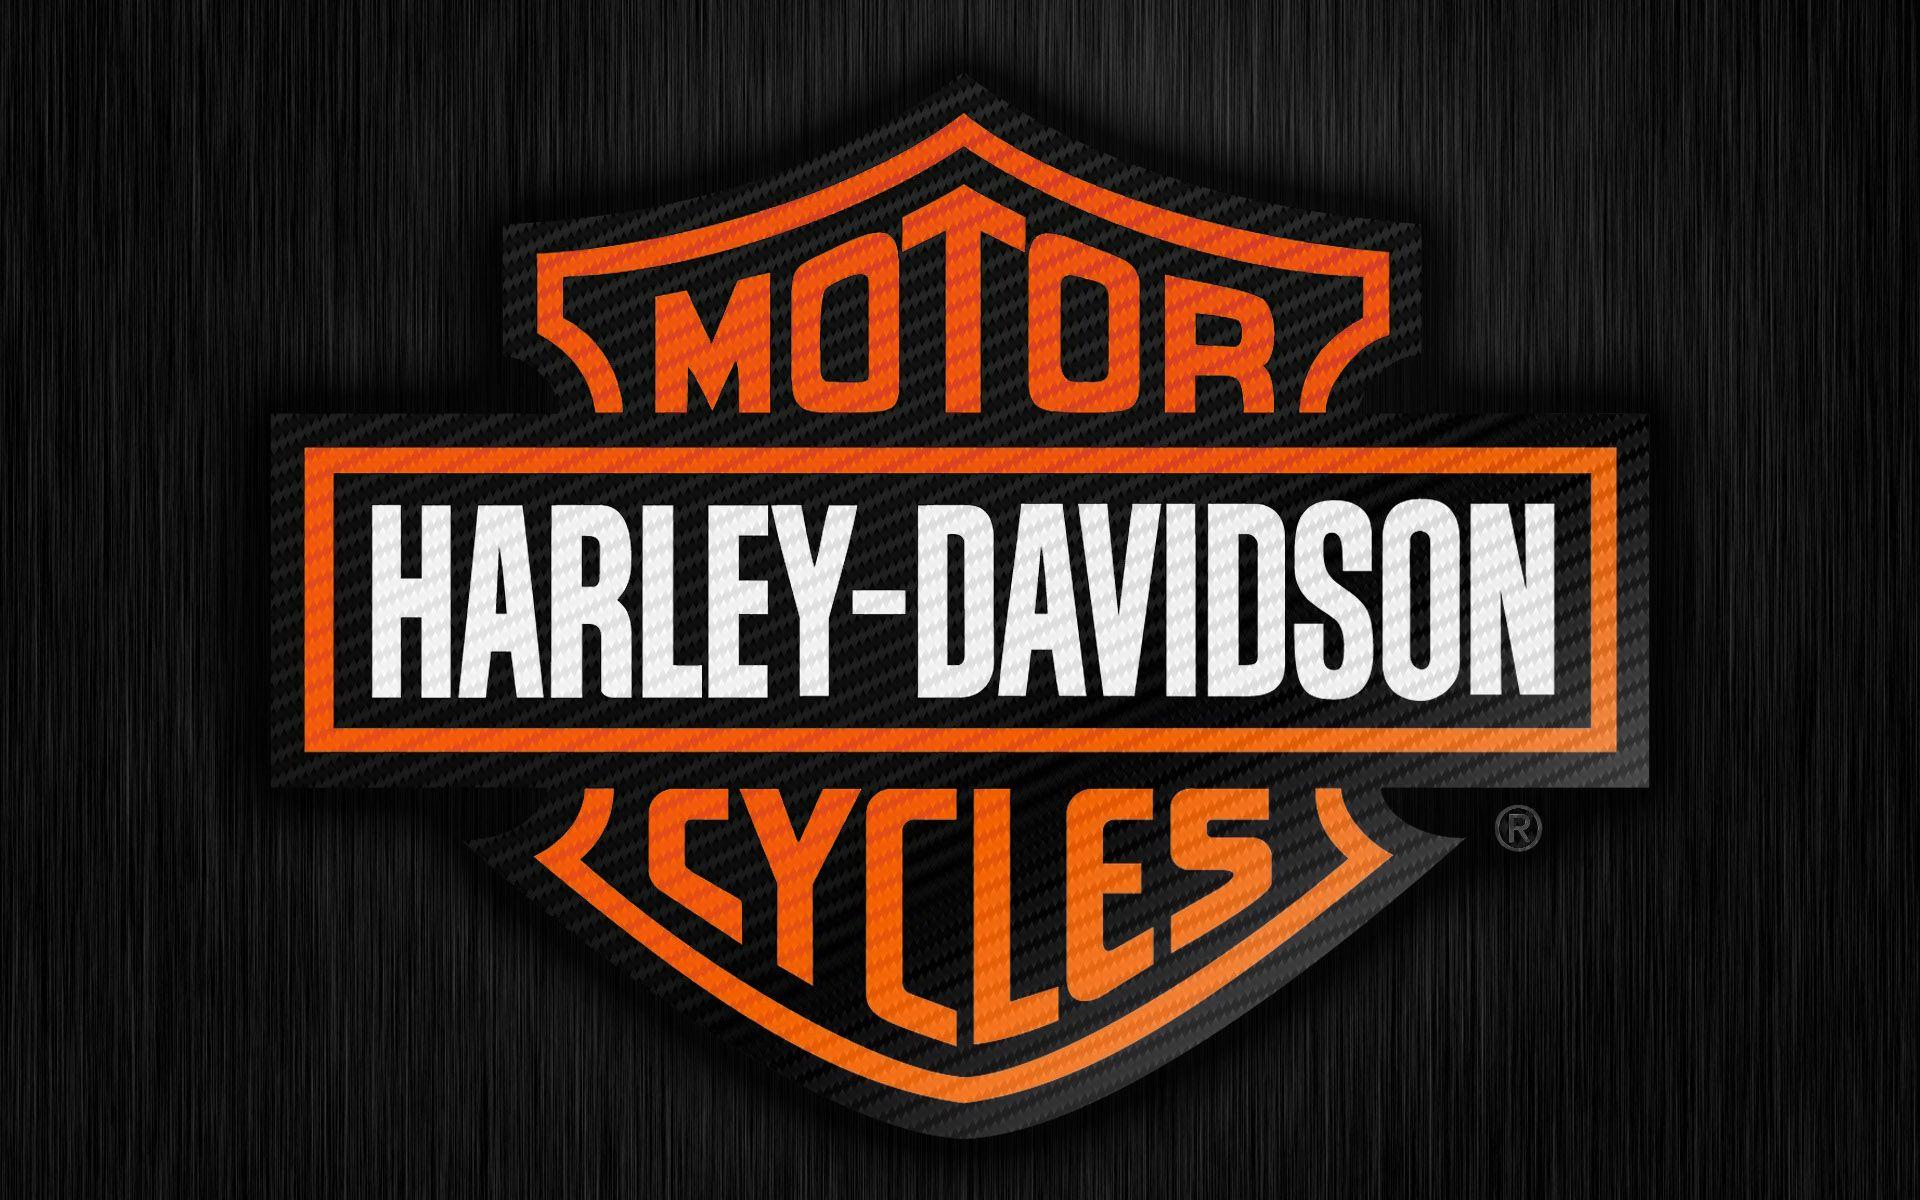 Honda Dealer Orlando >> Harley Davidson HD Wallpapers - Wallpaper Cave